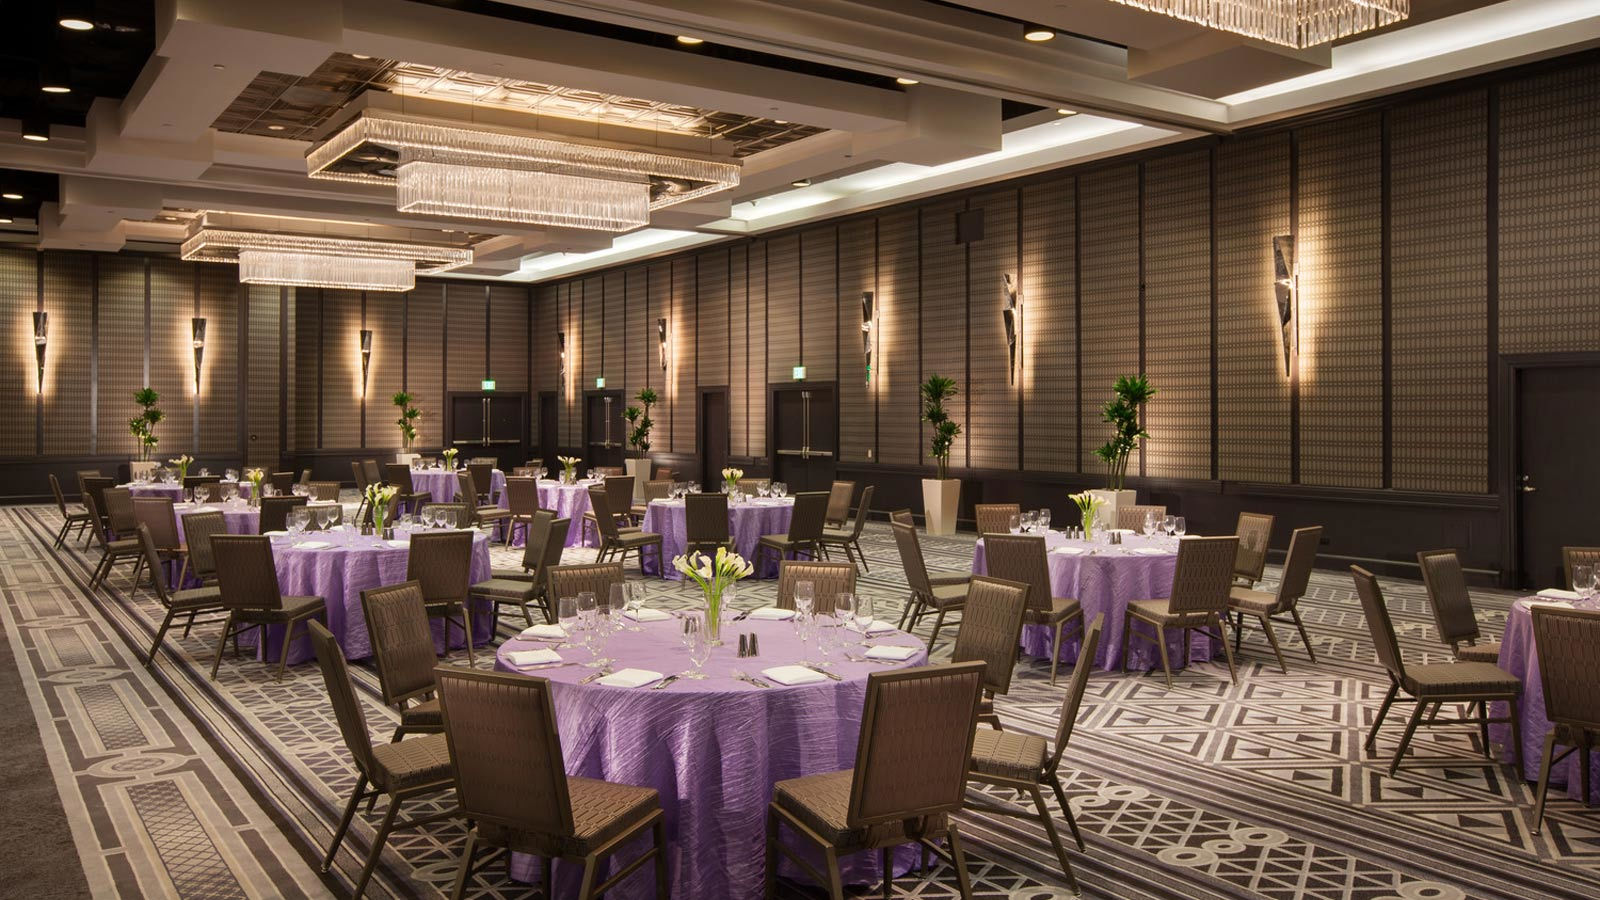 Wedding venues downtown la sheraton grand los angeles los angeles downtown wedding venues reception junglespirit Choice Image